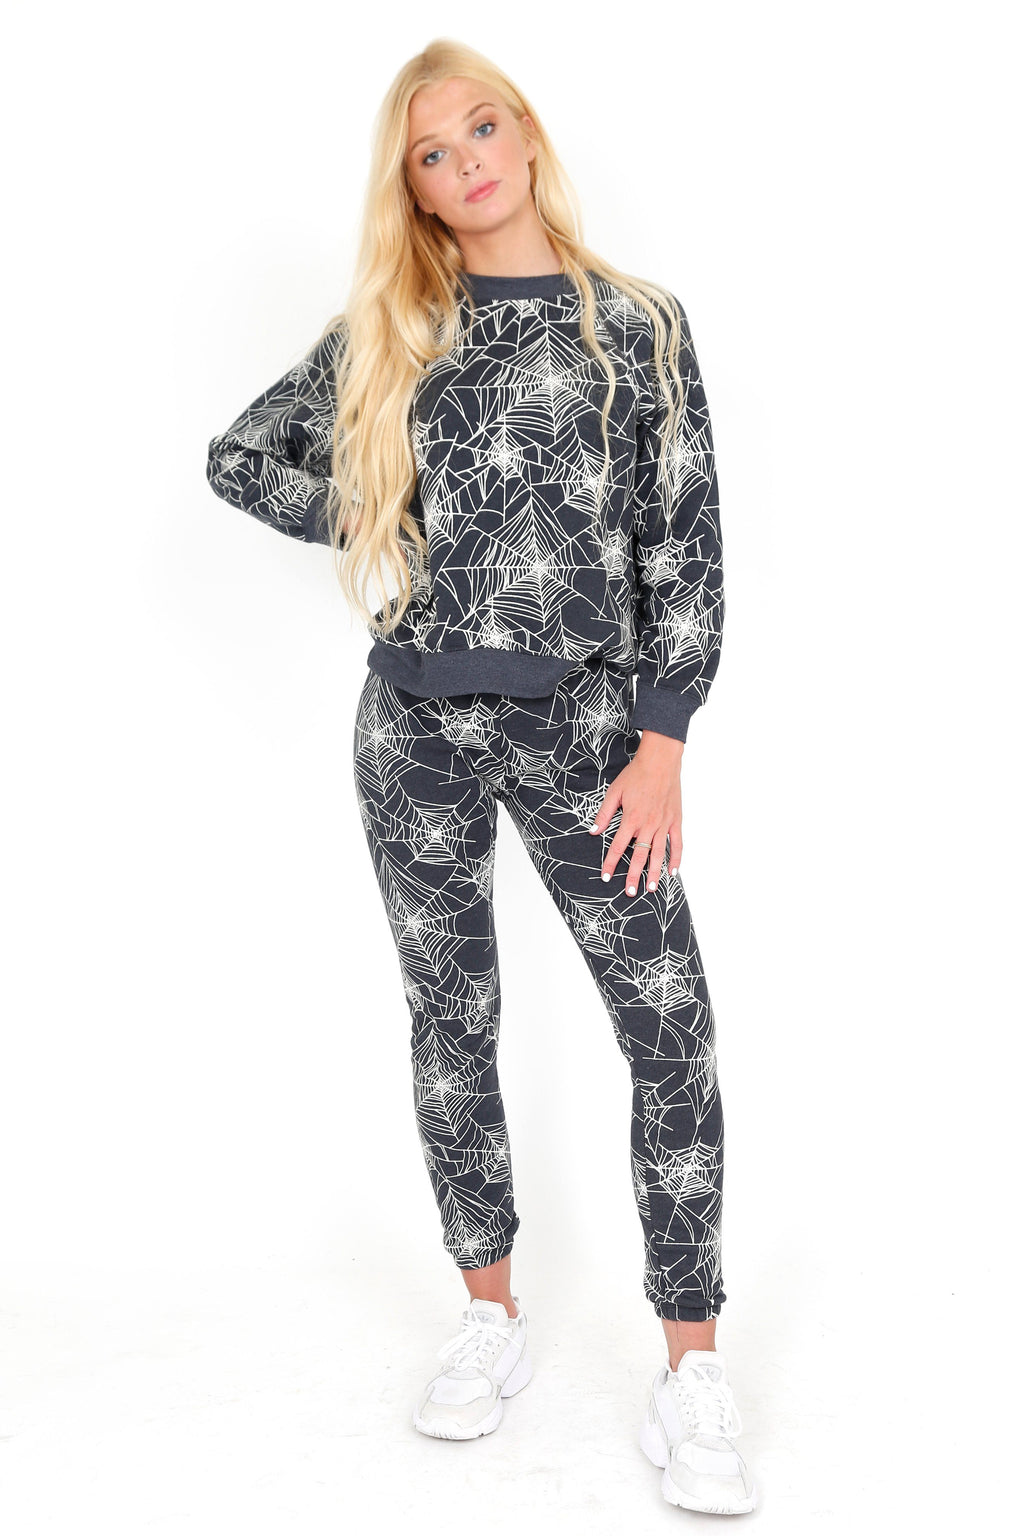 WILDFOX | Knox Pant - Black Widow